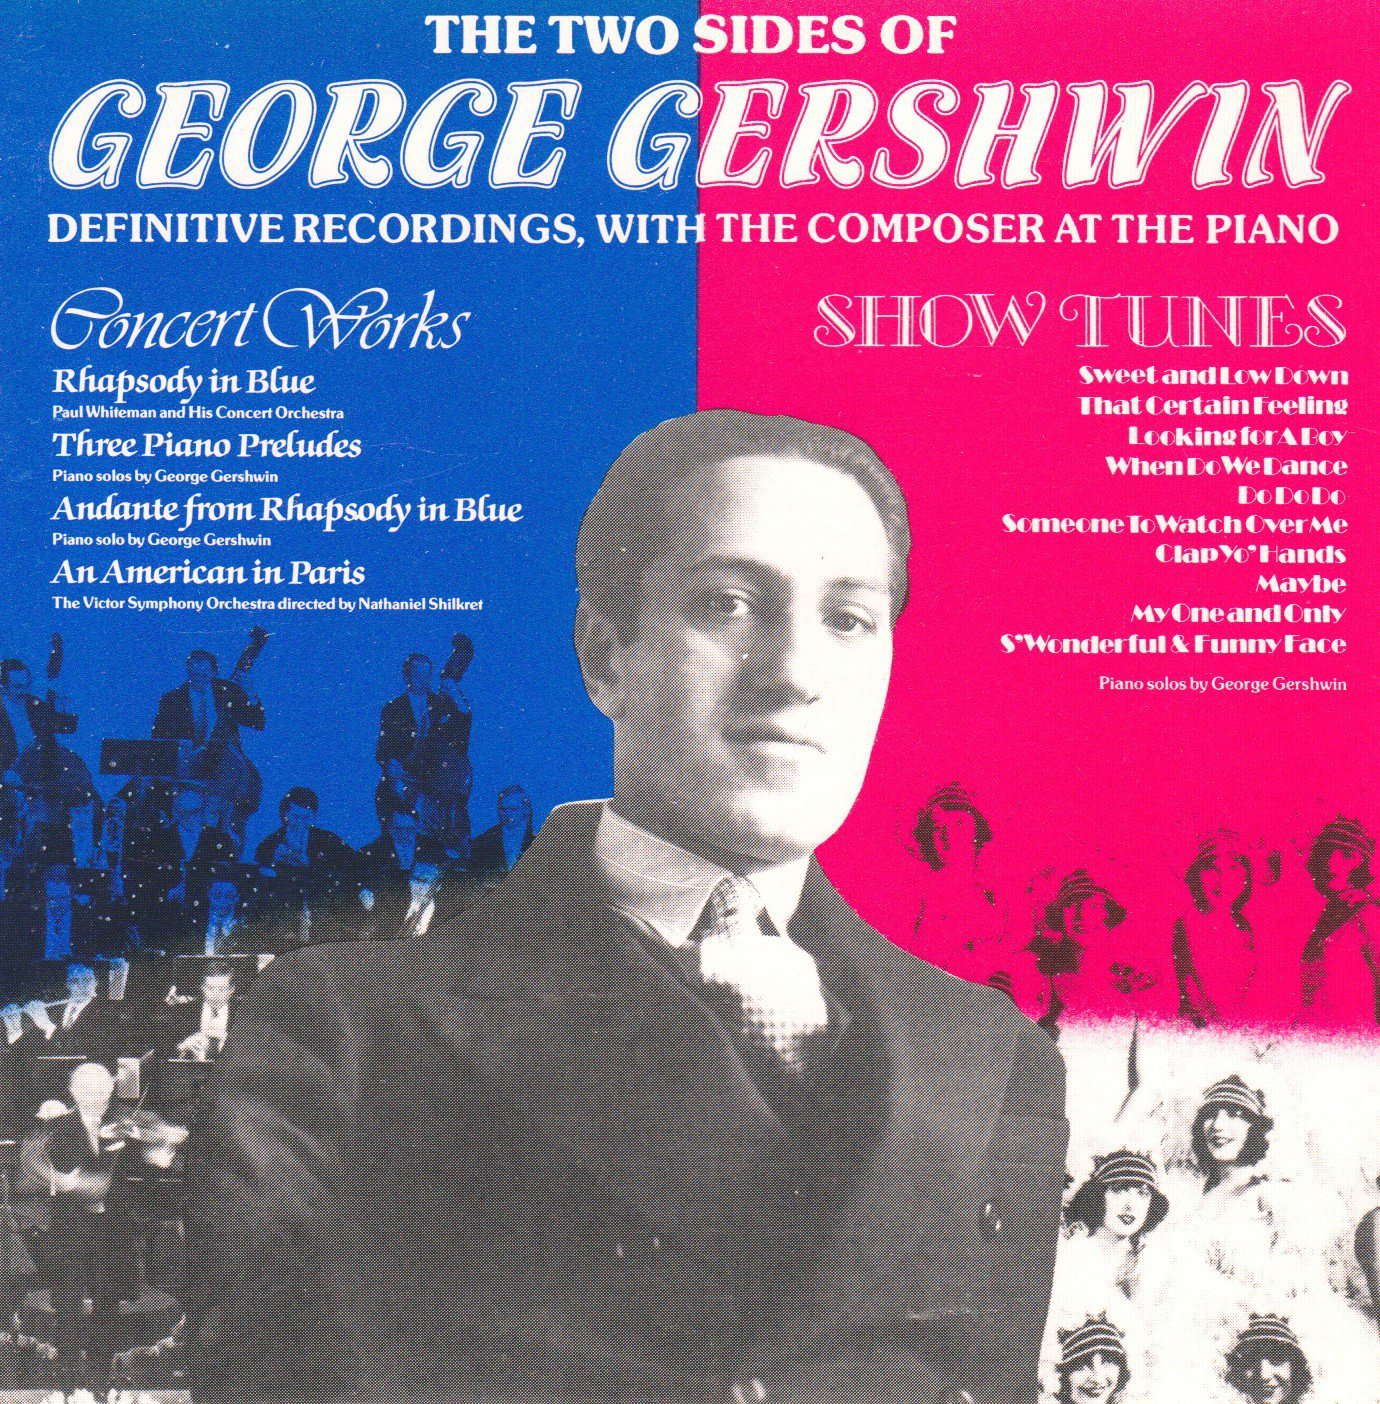 Two Sides of George Gershwin